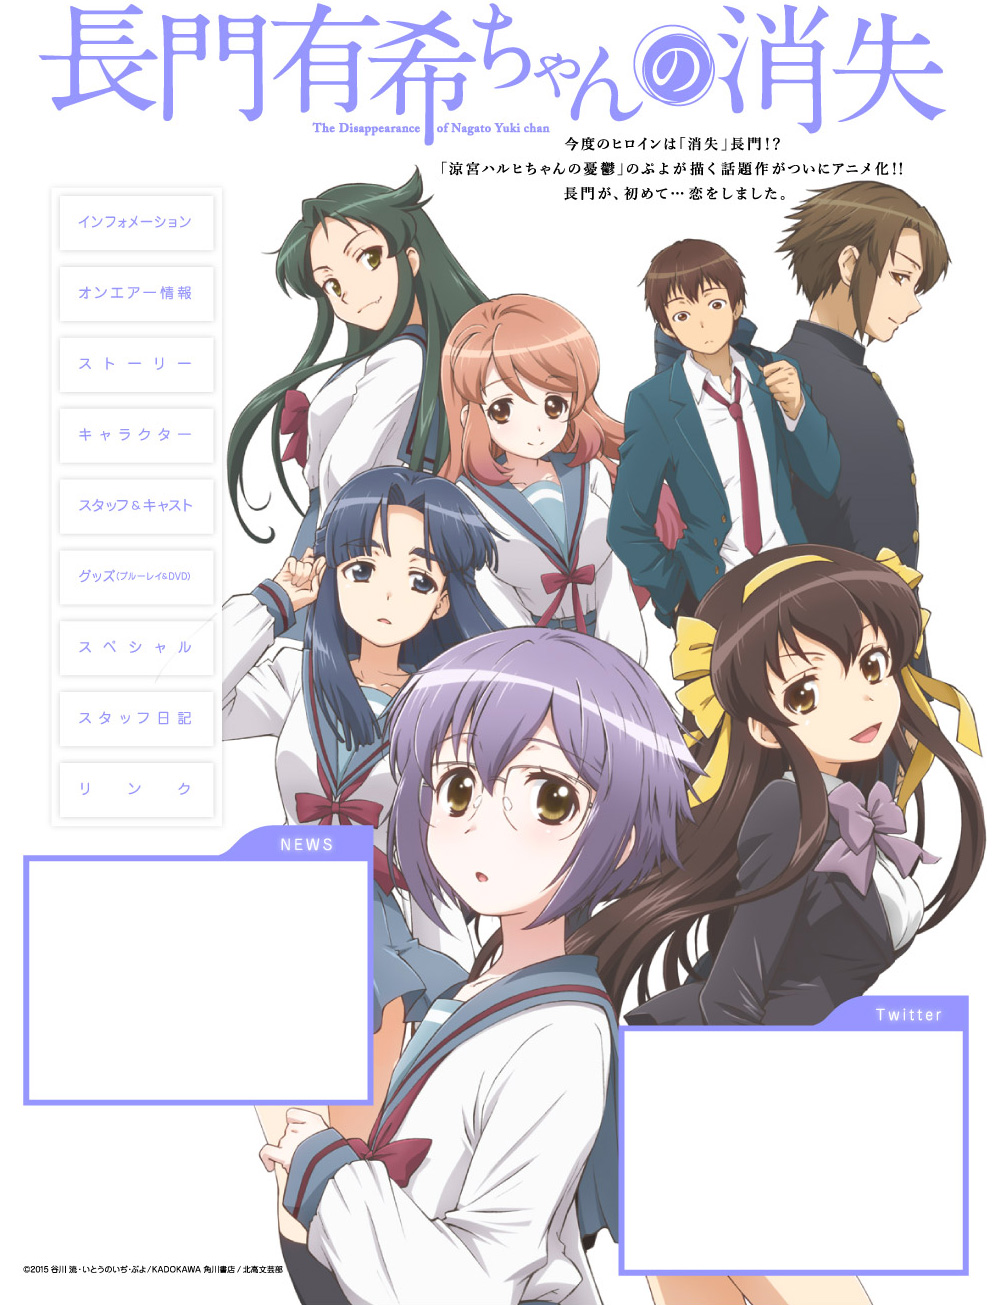 The-Disappearance-of-Nagato-Yuki-Chan-Anime-Visual-2-Website